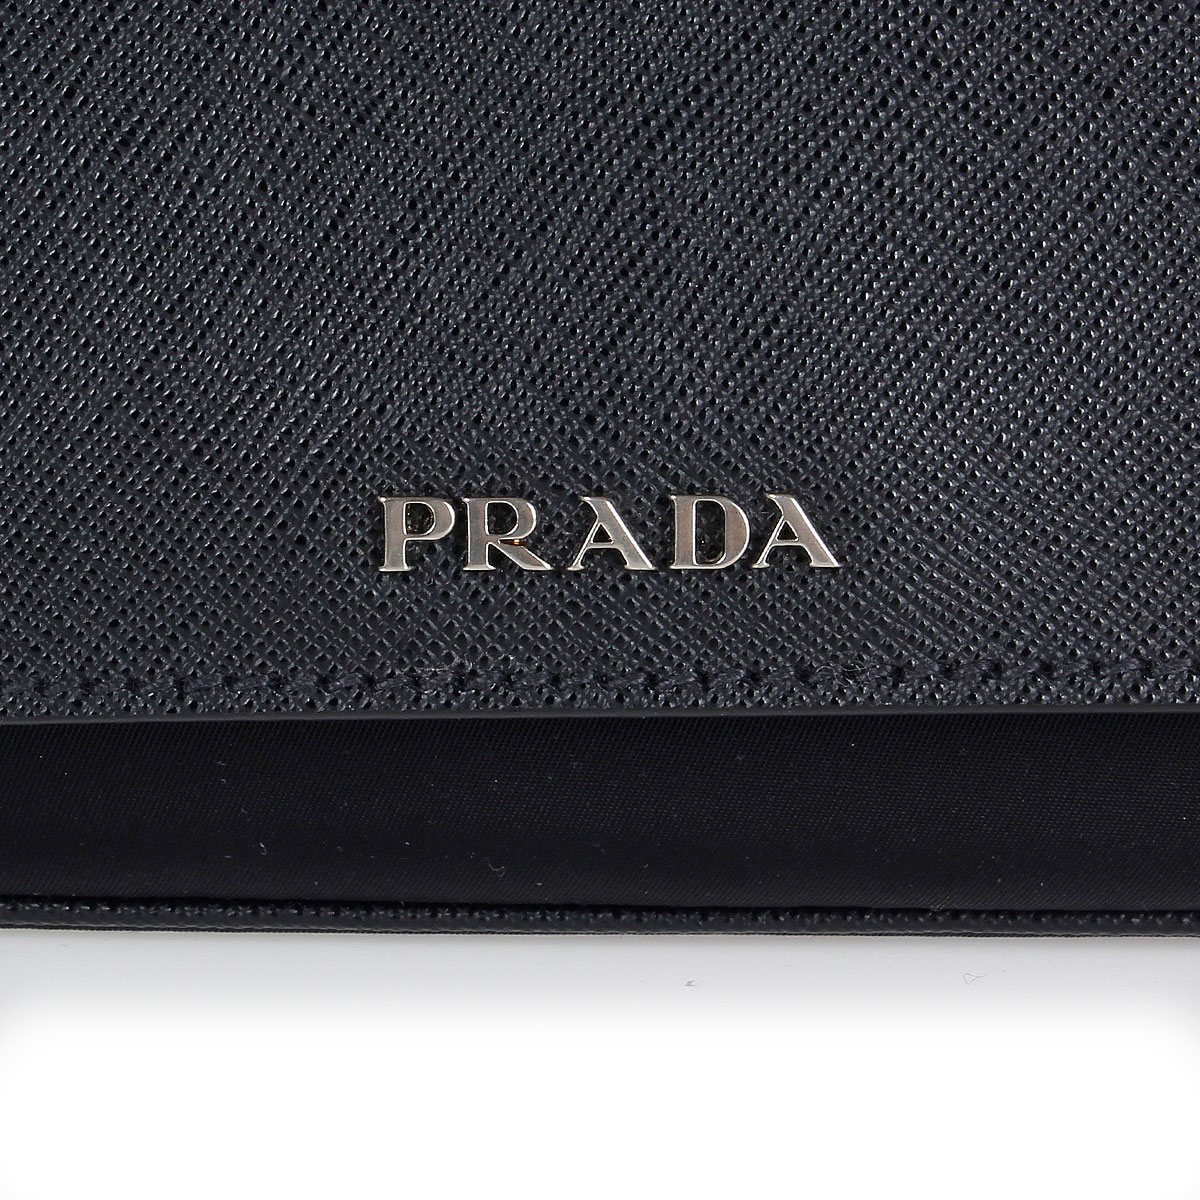 Prada Donna Borsa in pelle e tessuto - Spence Outlet